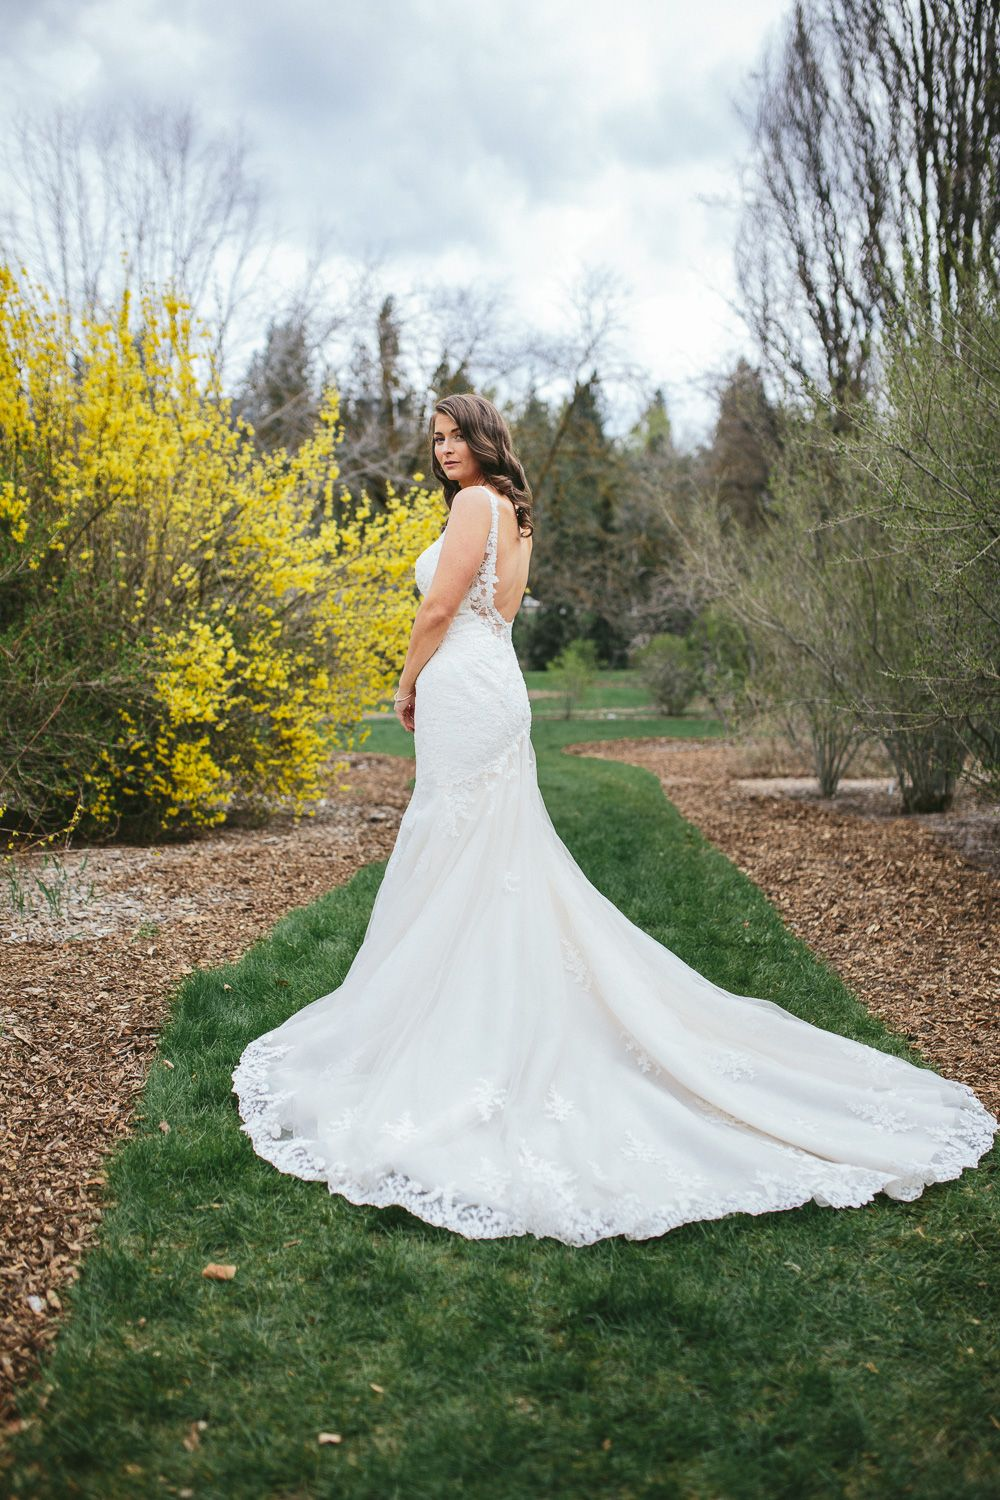 Joe Valerie Wedding Barrister Winery Spokane Wa Hannah Victoria Photography Wedding Gowns Lace Modern Bridal Gowns Classic Wedding Gowns